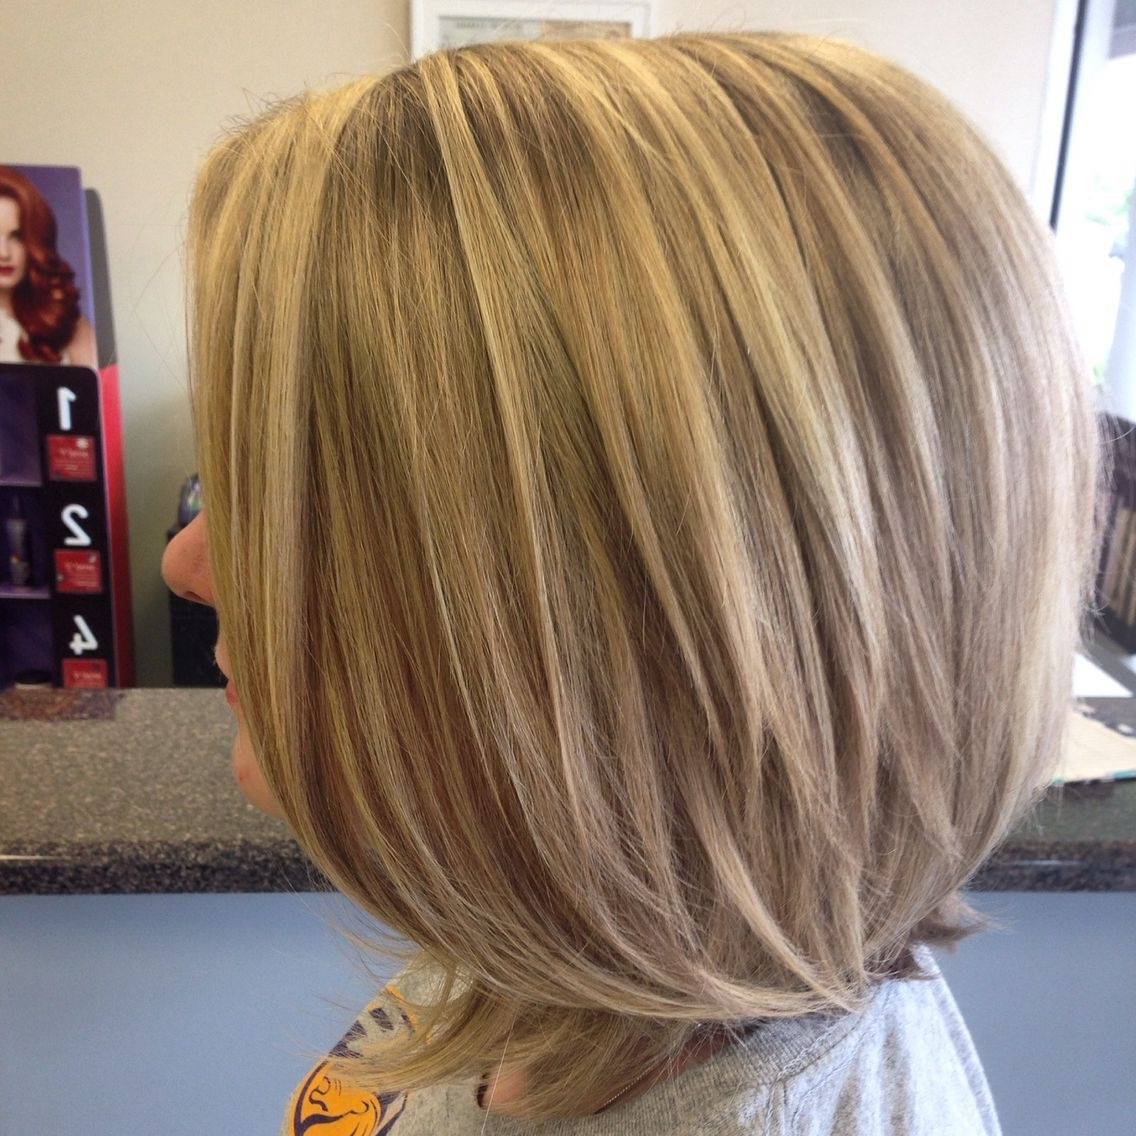 Most Popular Long Bob Blonde Hairstyles With Babylights In Dark Blonde Hair With Highlights. Long Bob Haircut (View 6 of 20)